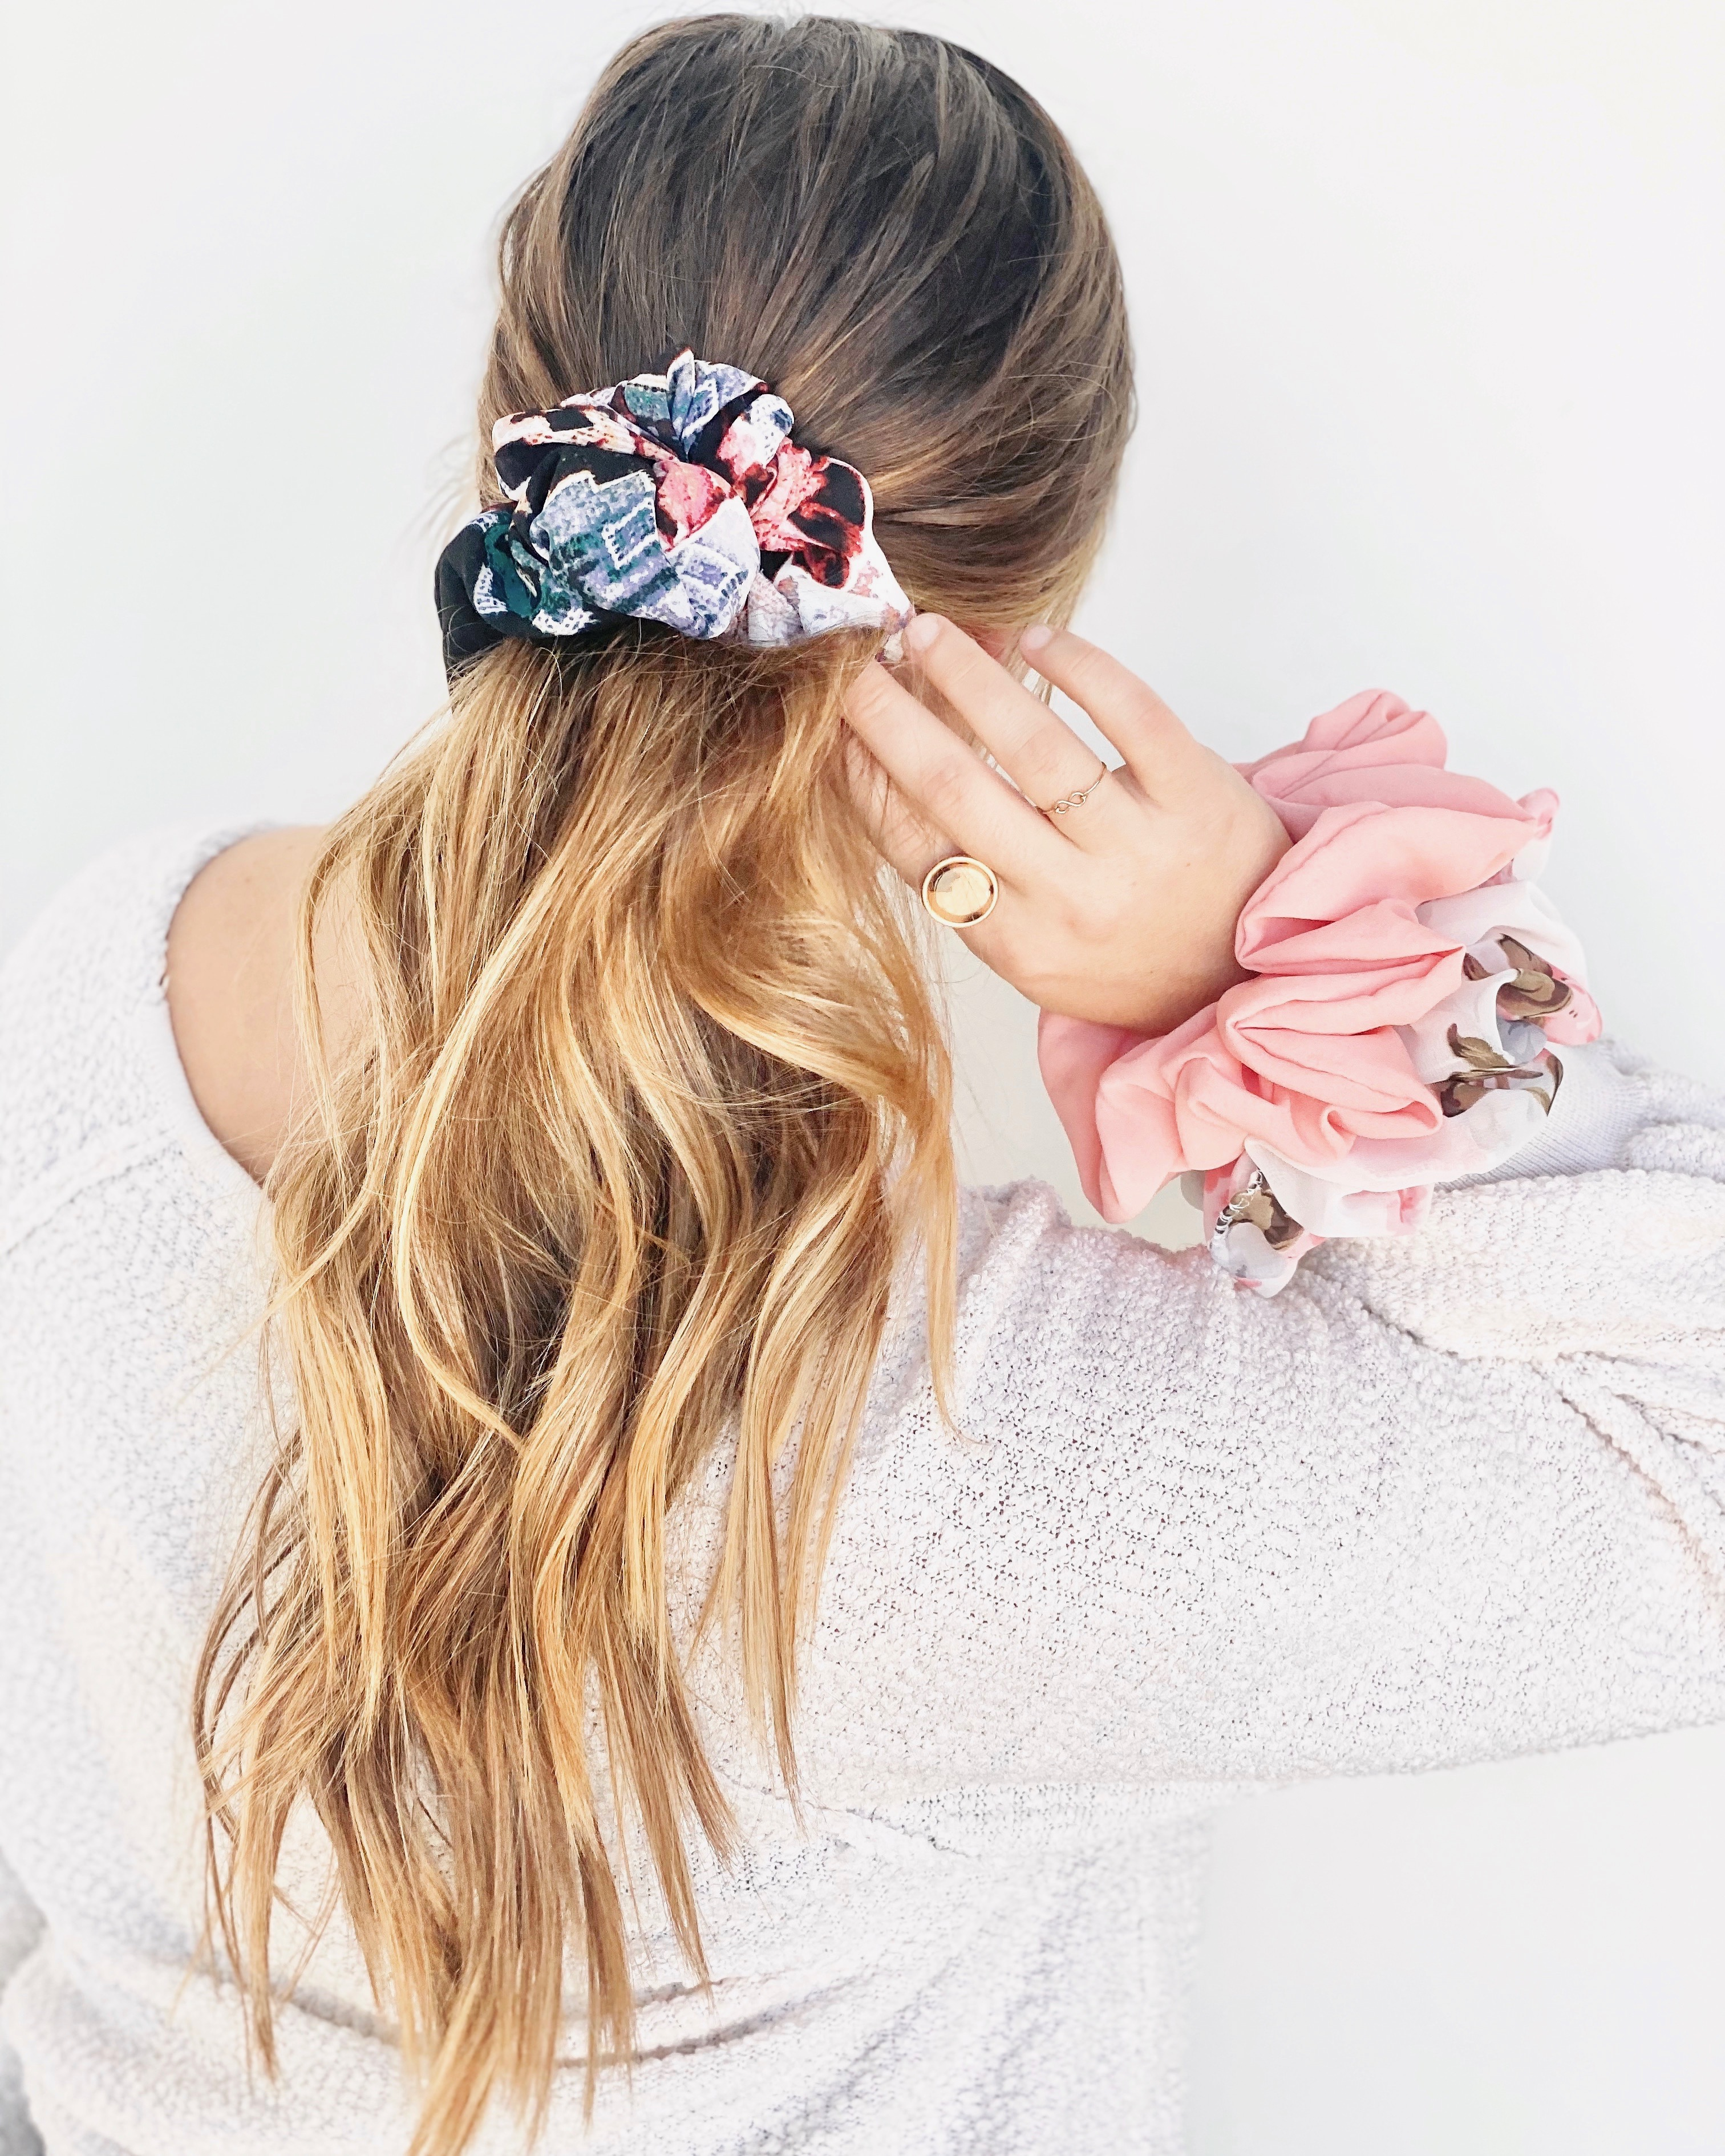 Regenerous Designs scrunchies in a girl's hair and on her wrist